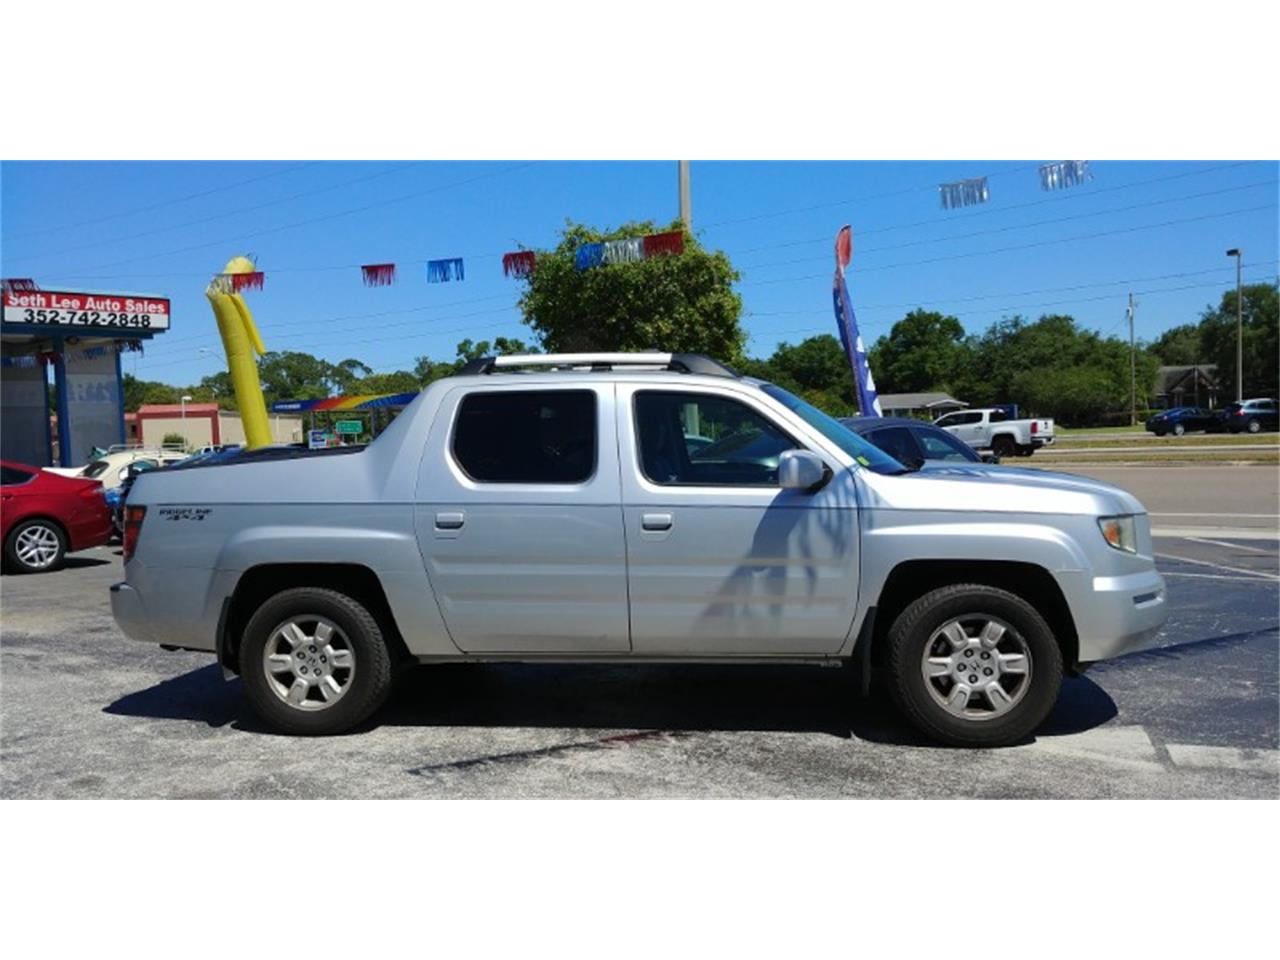 Large Picture of 2007 Ridgeline - $9,577.00 - PXK5